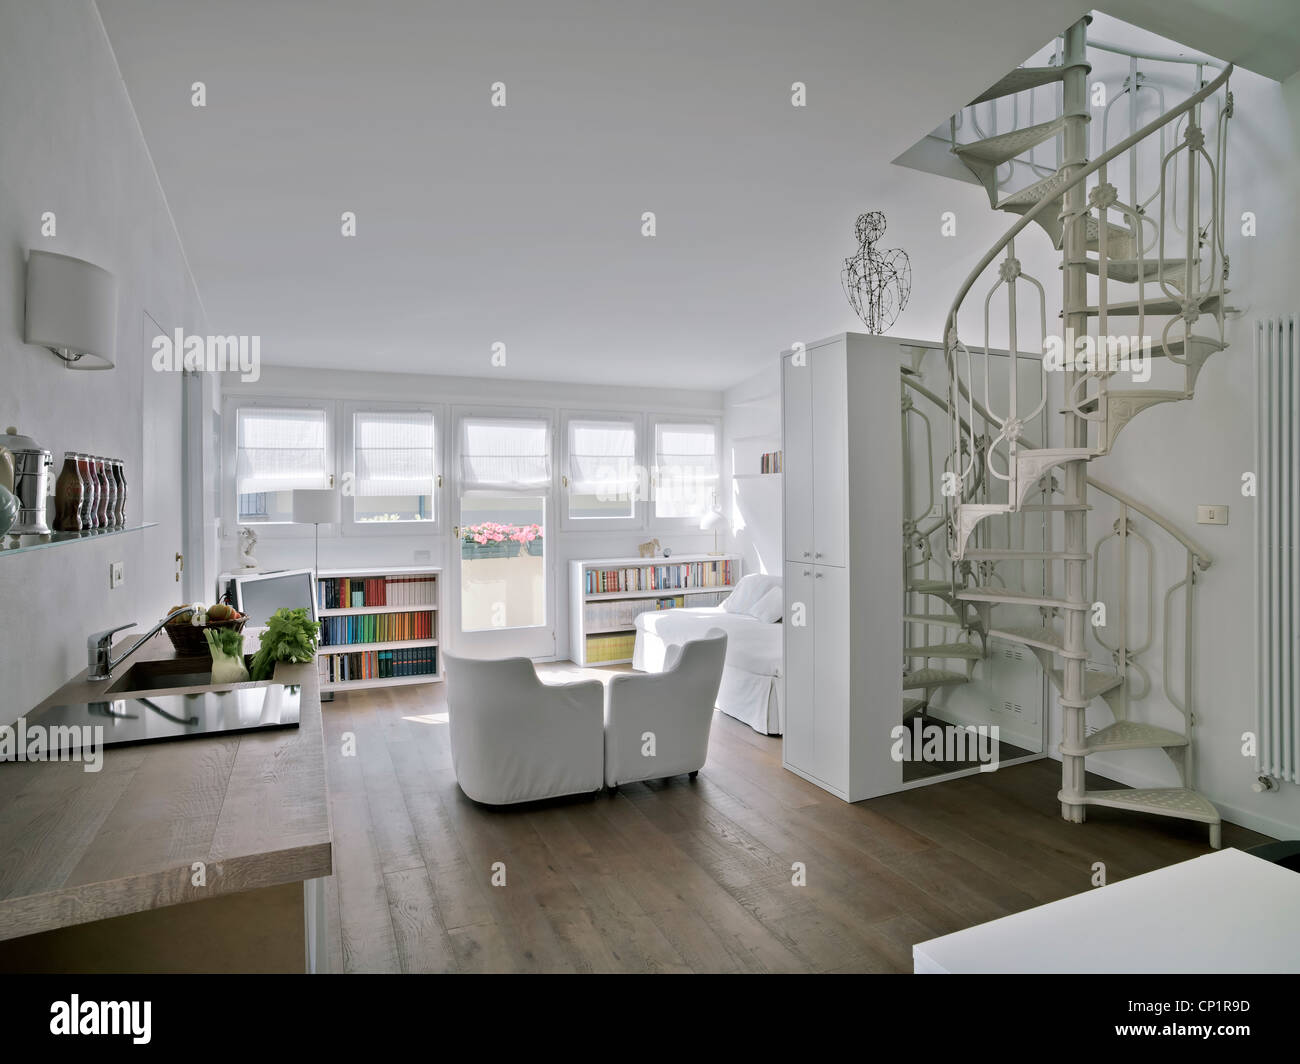 Modern Living Room With A Spiral Staircase And Wood Floor Stock Photo Royalty Free Image